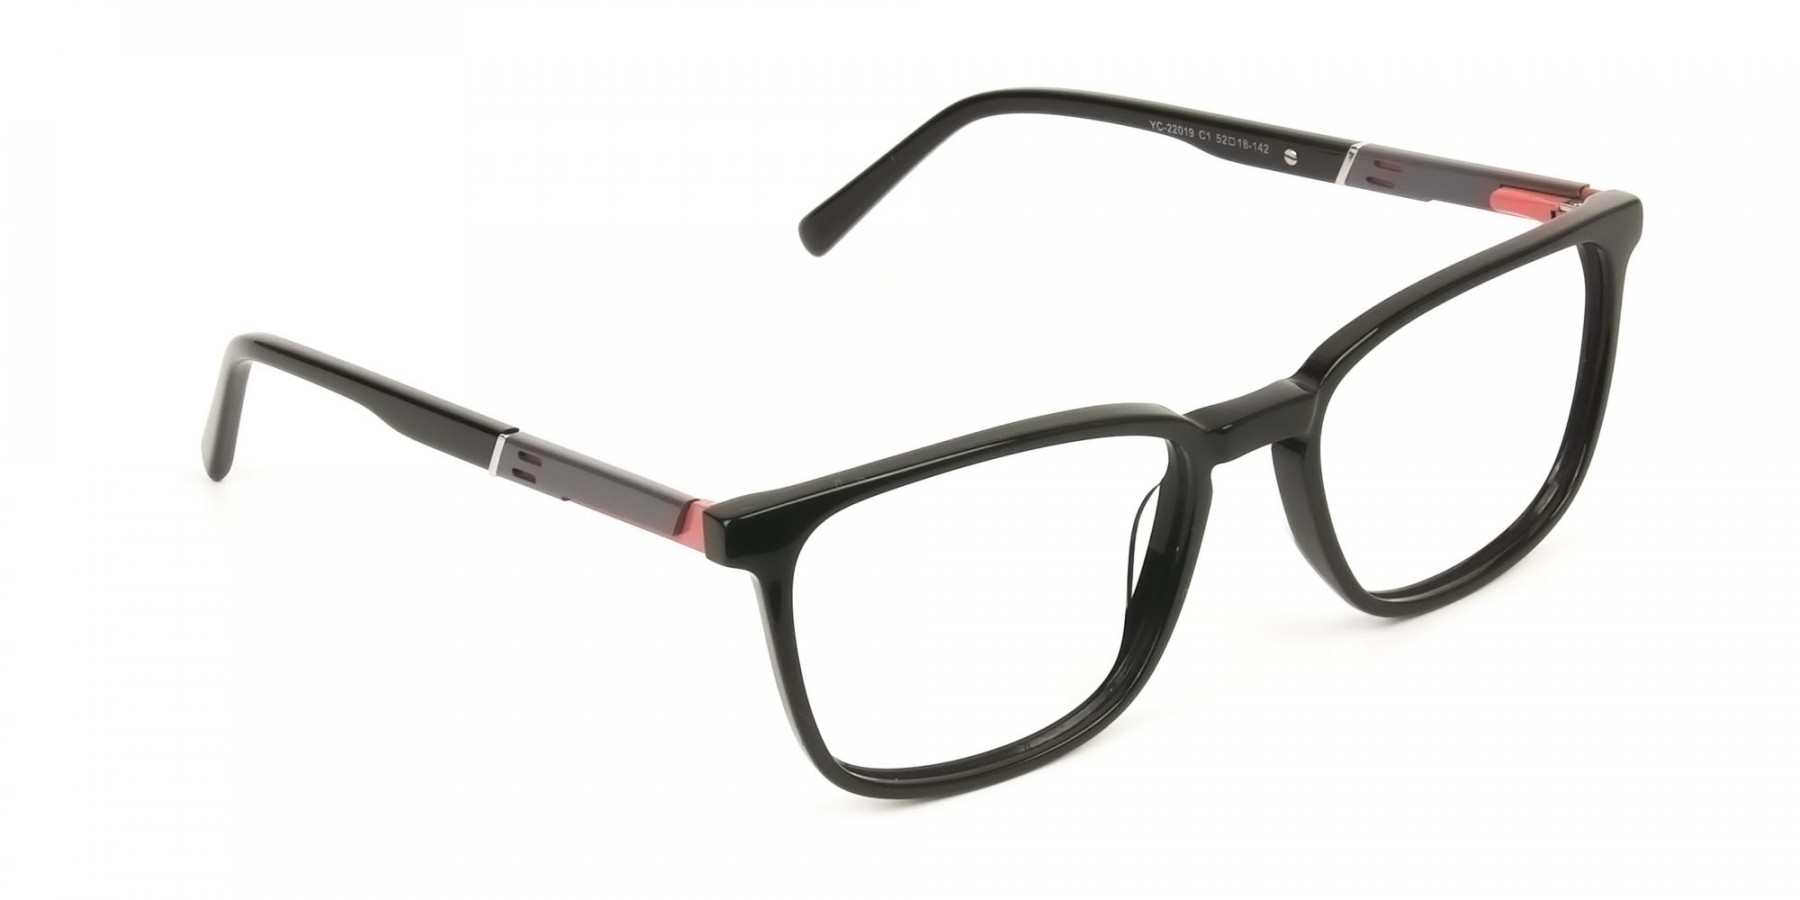 Lightweight Black Sport Style Rectangular Glasses - 1